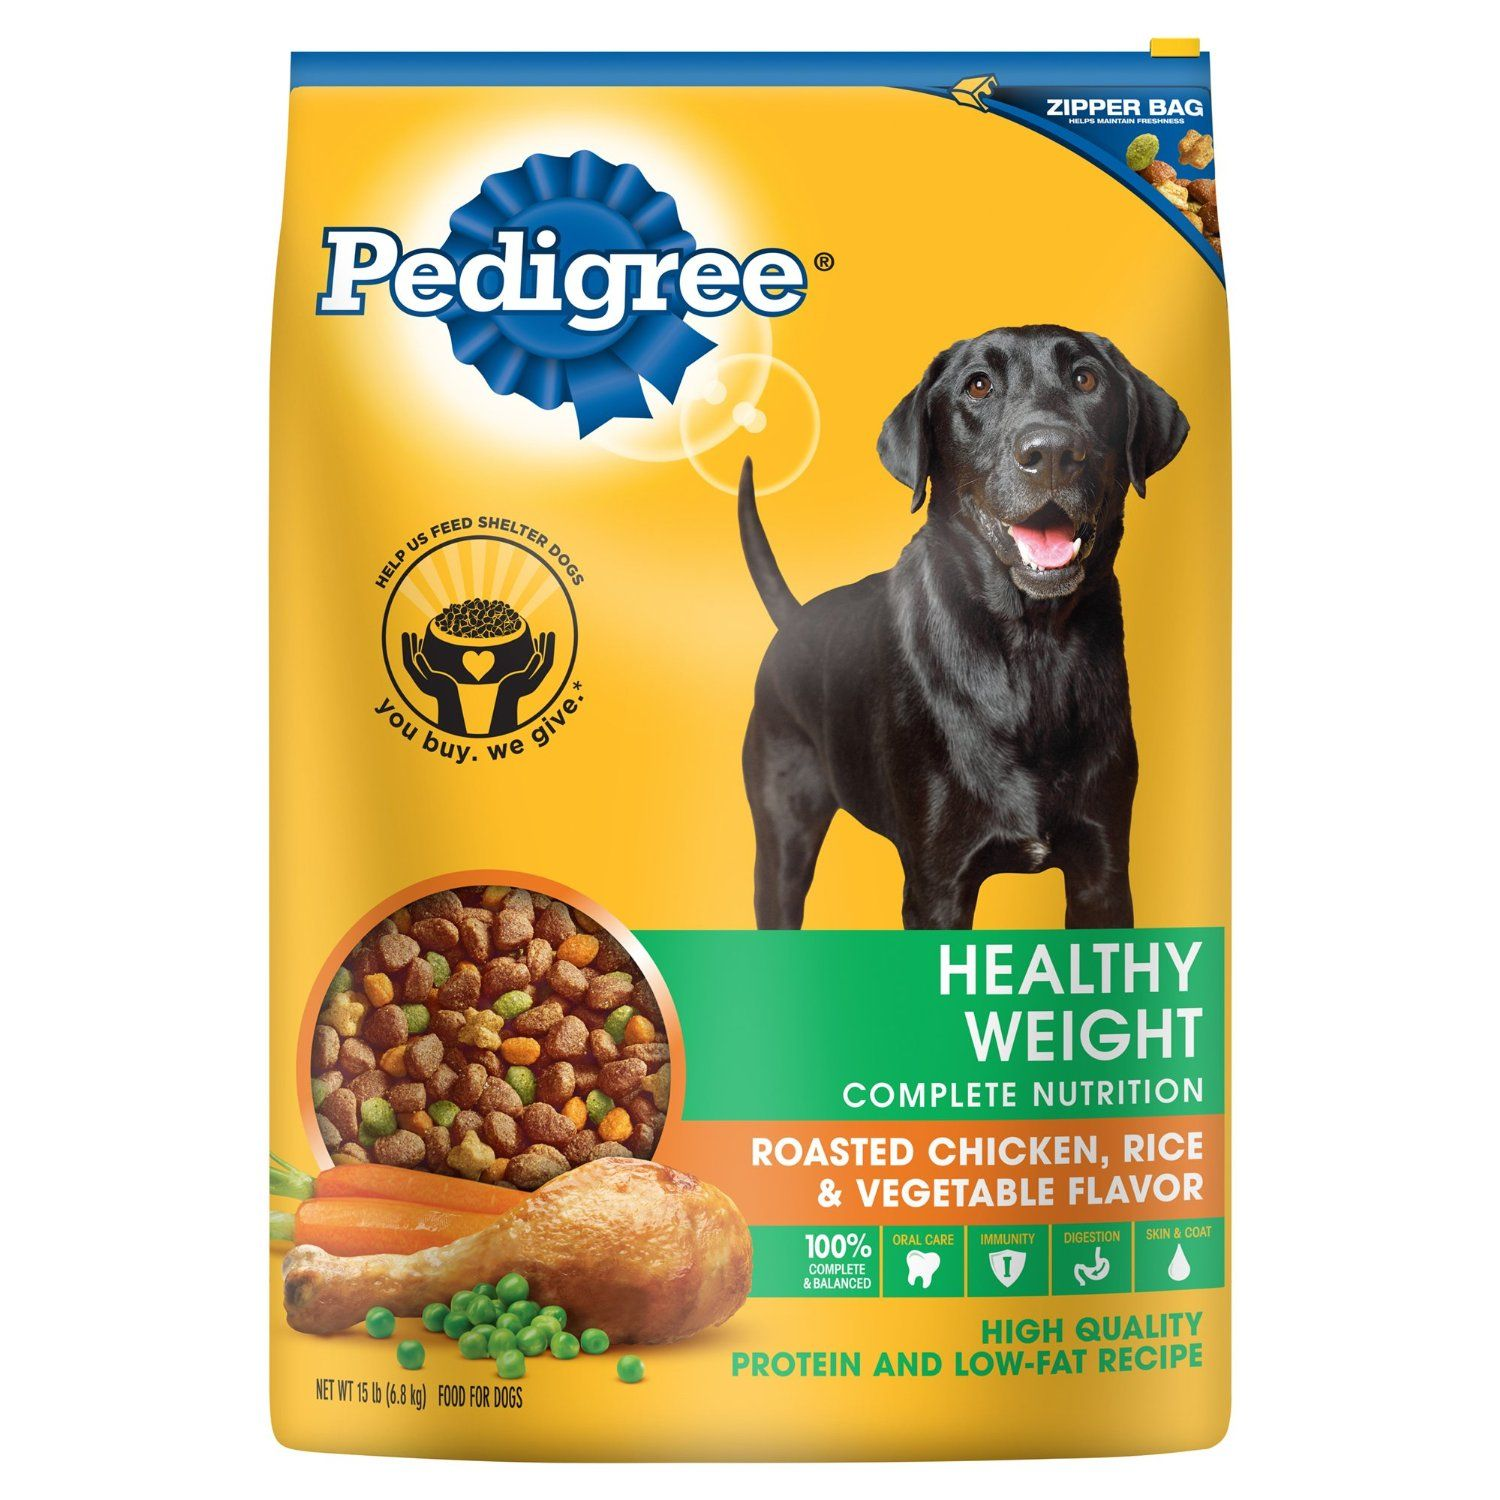 Pedigree Healthy Weight Adult Dry Dog Food Save This Wonderfull